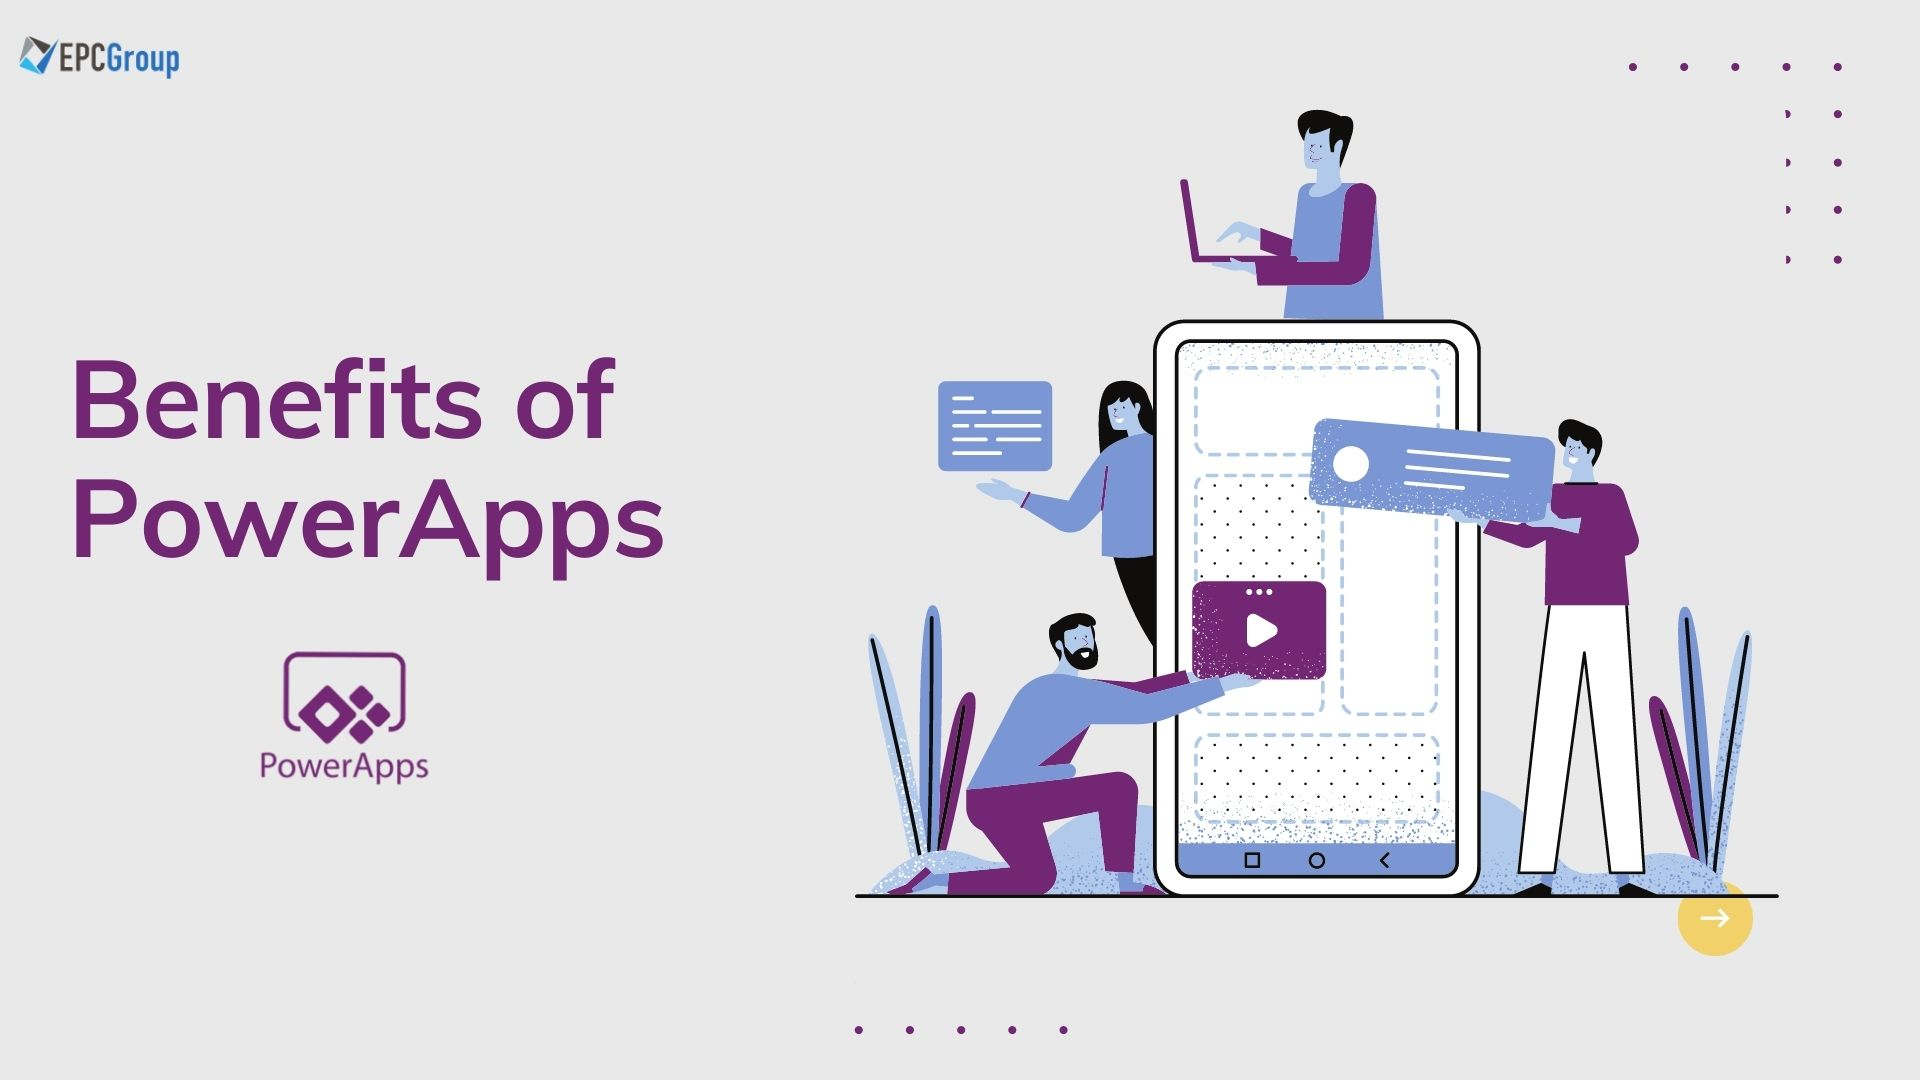 Benefits of PowerApps To Your Organizations - thumb image